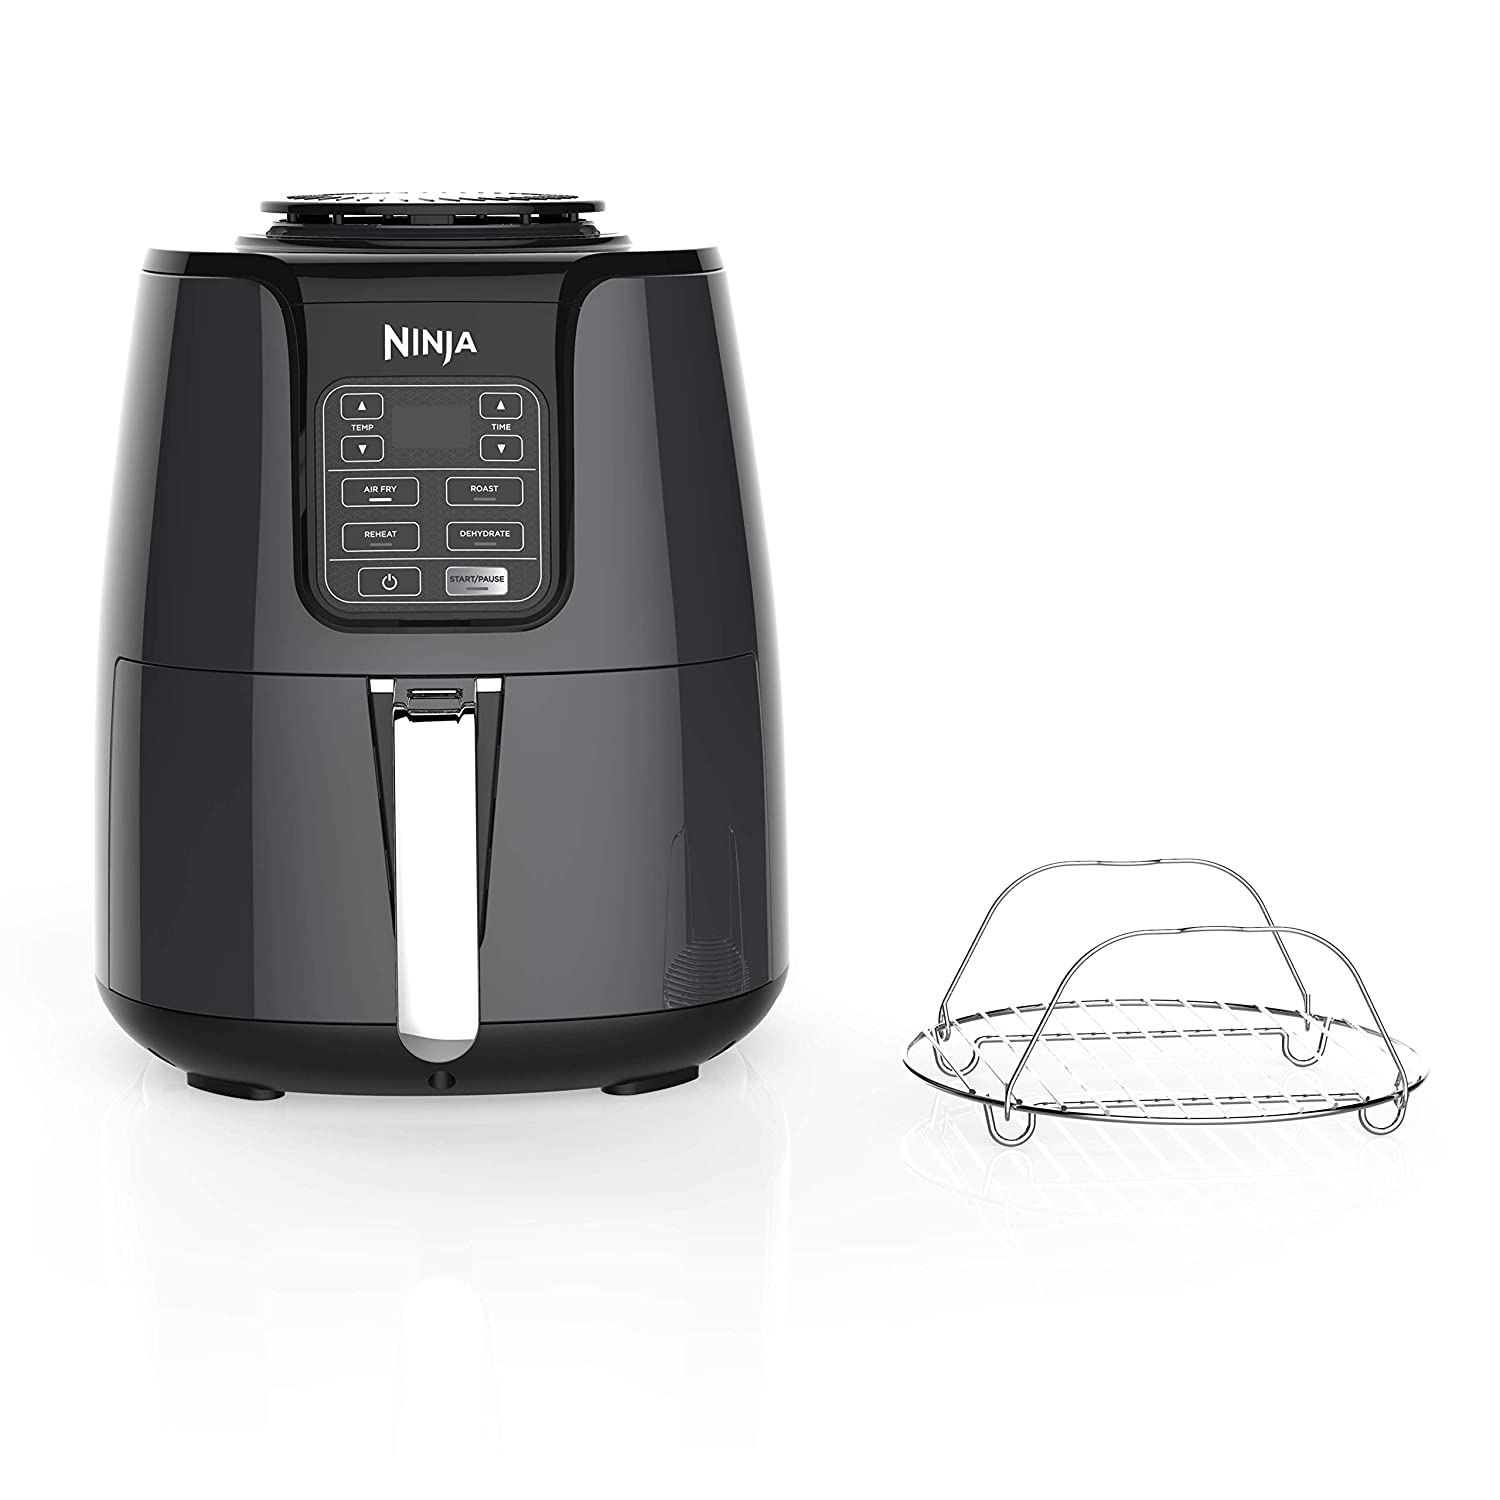 Ninja Air Fryer, 1550-Watt Programmable Base for Air Frying, Roasting, Reheating Dehydrating with 4-Quart Ceramic Coated Basket AF101 , Black Gray